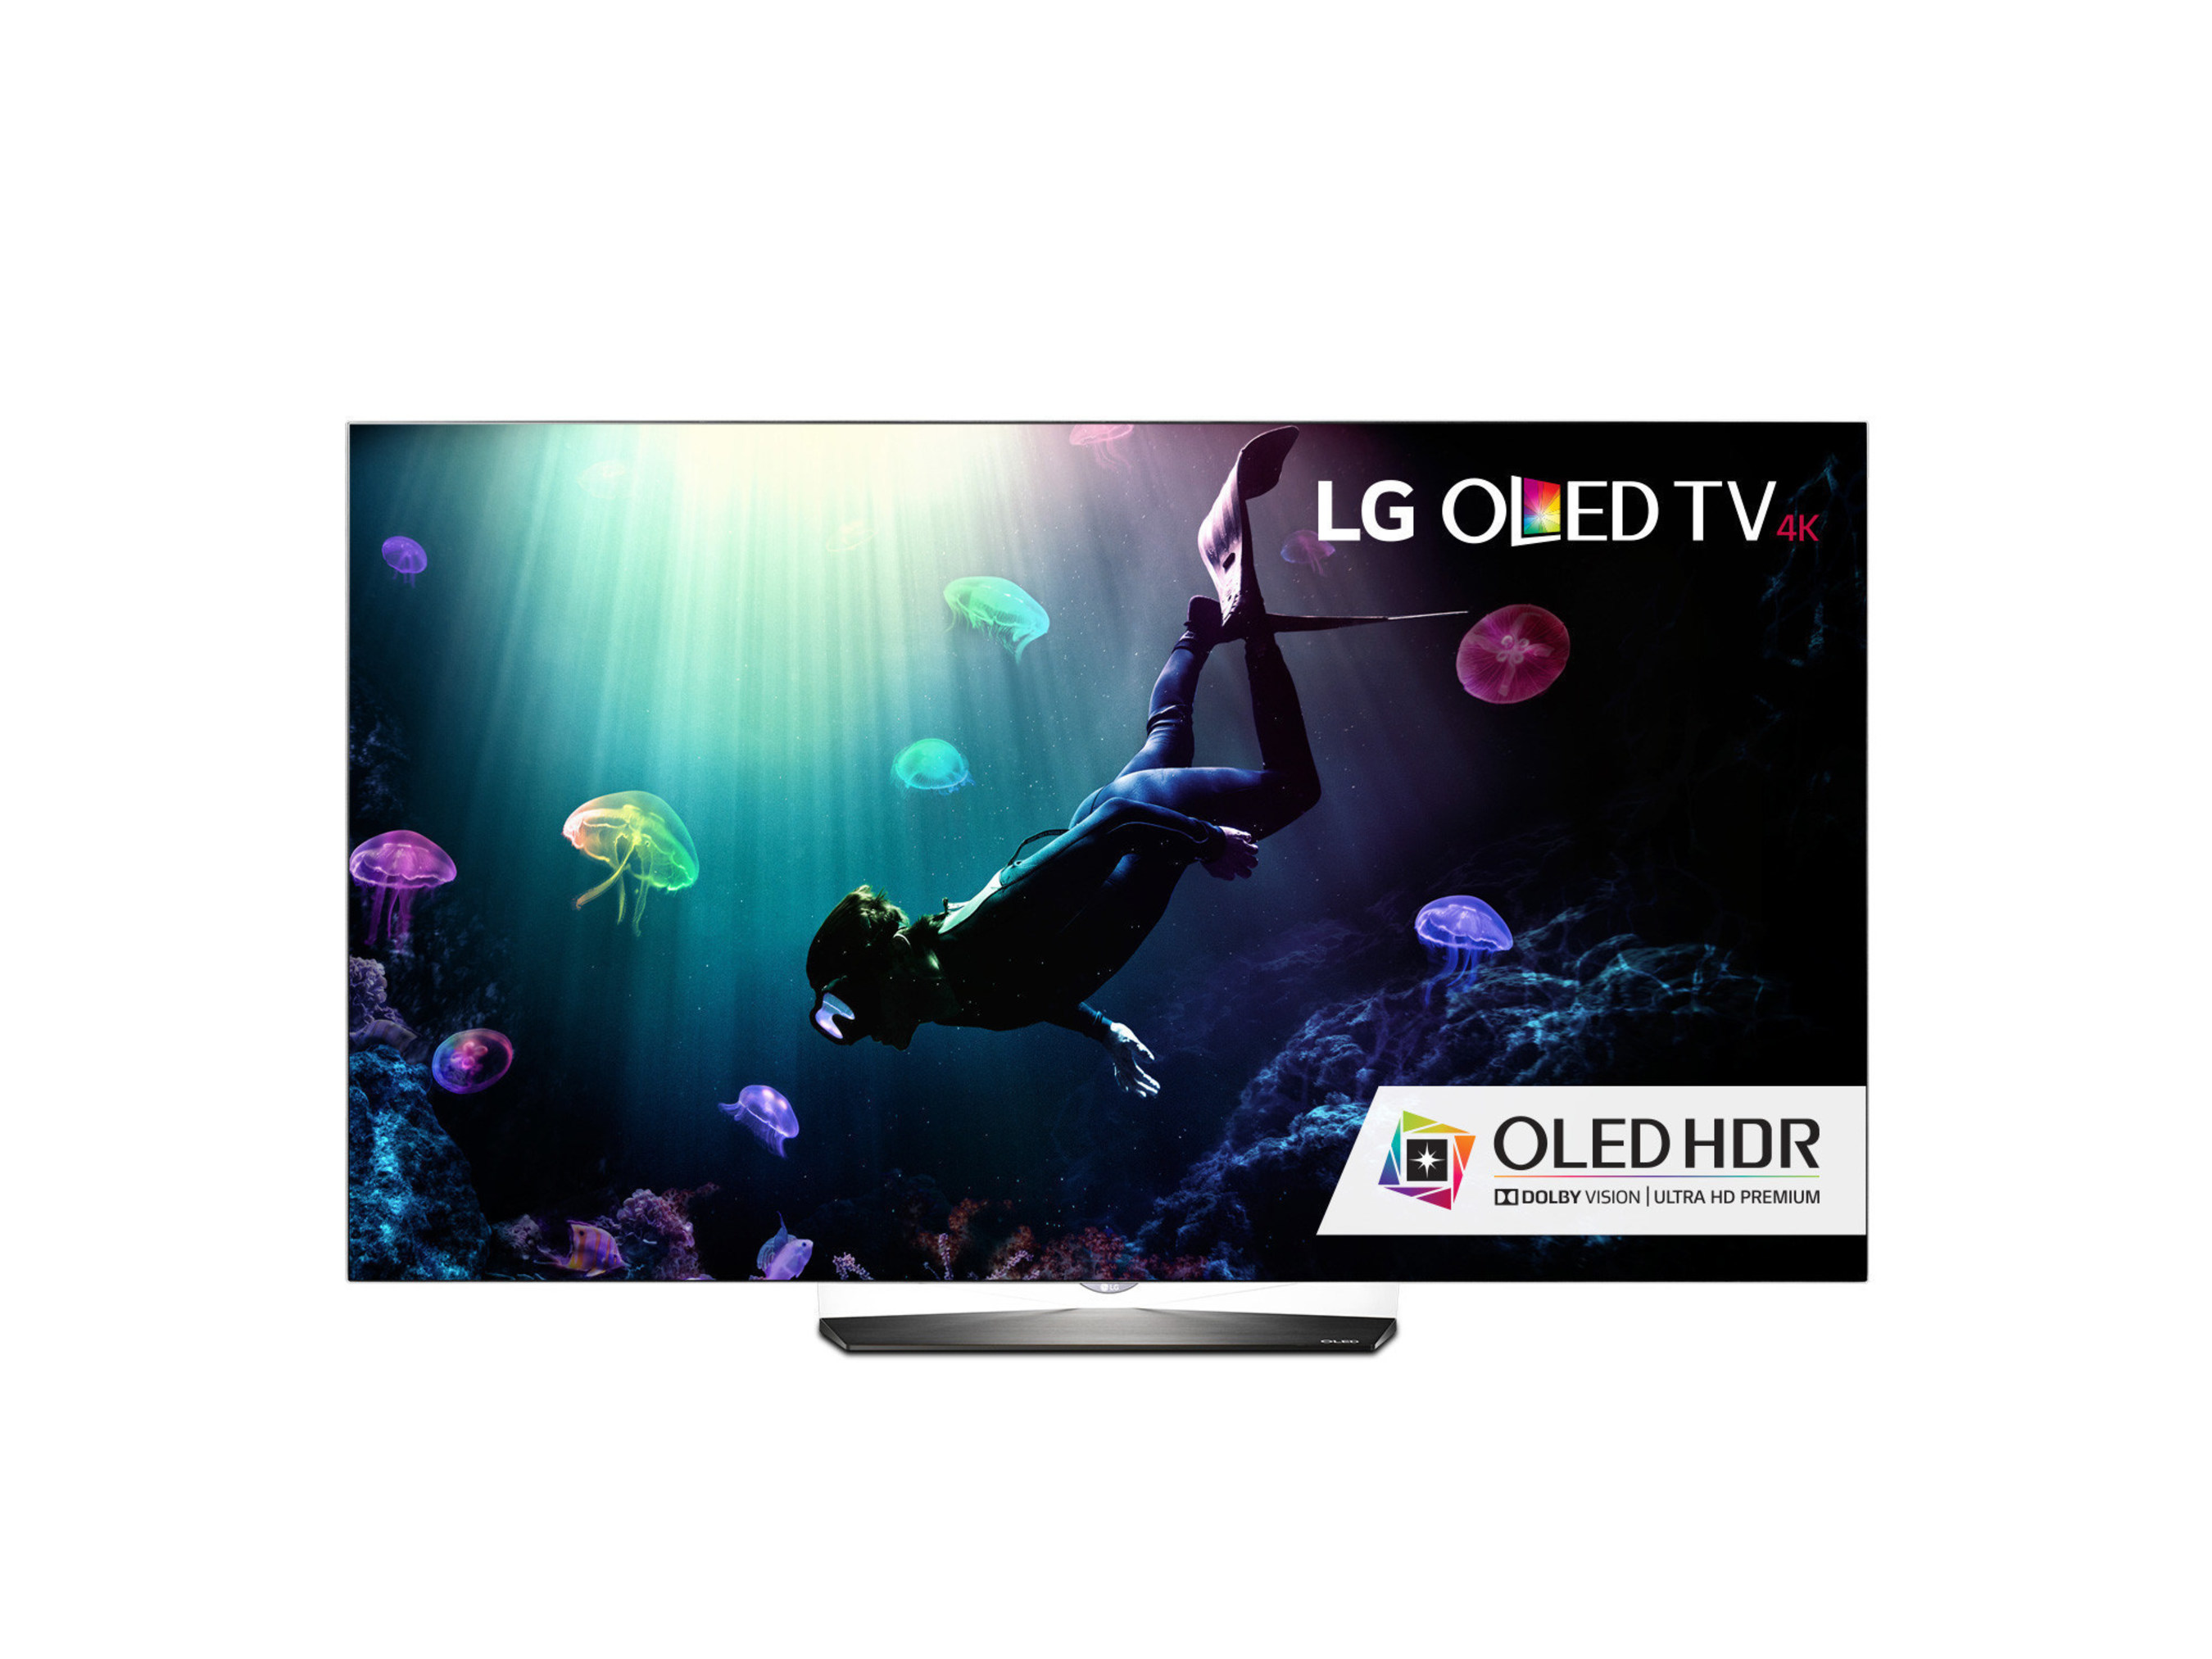 LG Electronics USA today announced pricing and availability for its 2016 OLED TV line, including the newly launched flat-panel B6 and curved-panel C6 series OLED TVs, which join the already released LG SIGNATURE OLED G6 and LG OLED E6 series available at leading retailers nationwide.